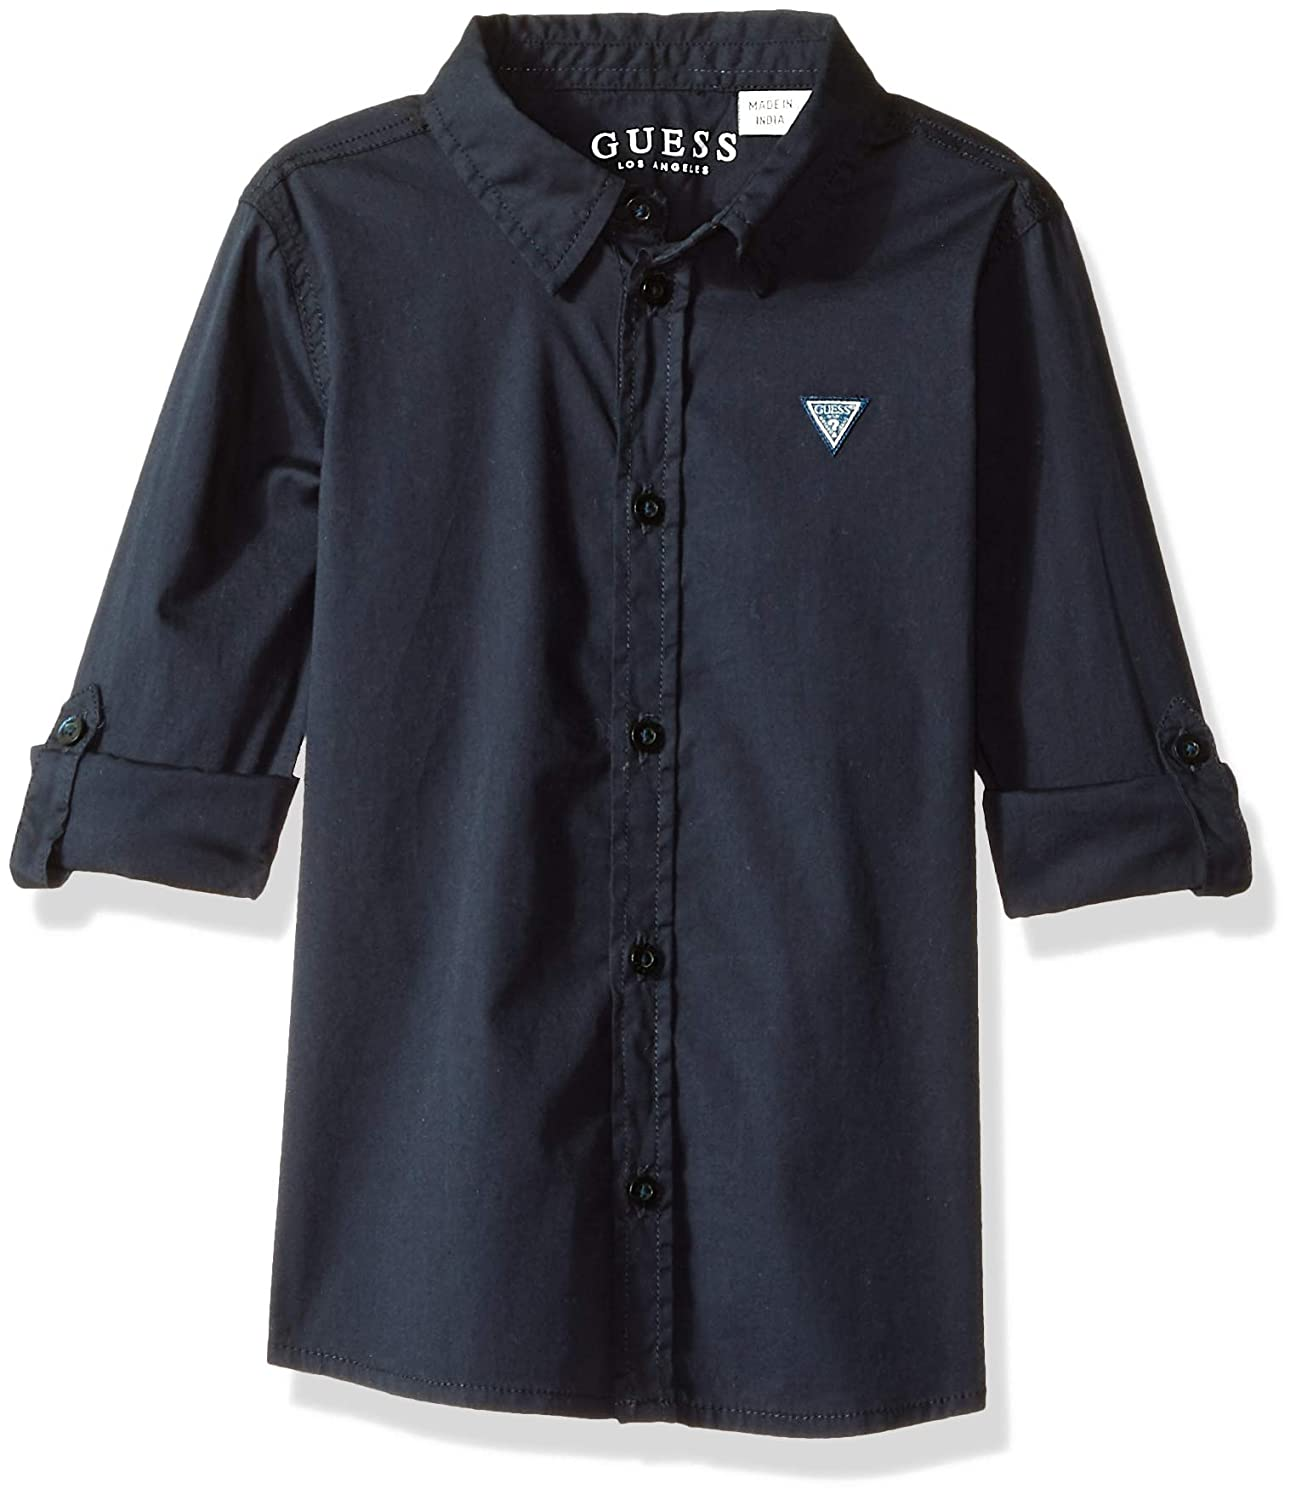 GUESS Boys Roll Up Sleeve Button Down Core Shirt